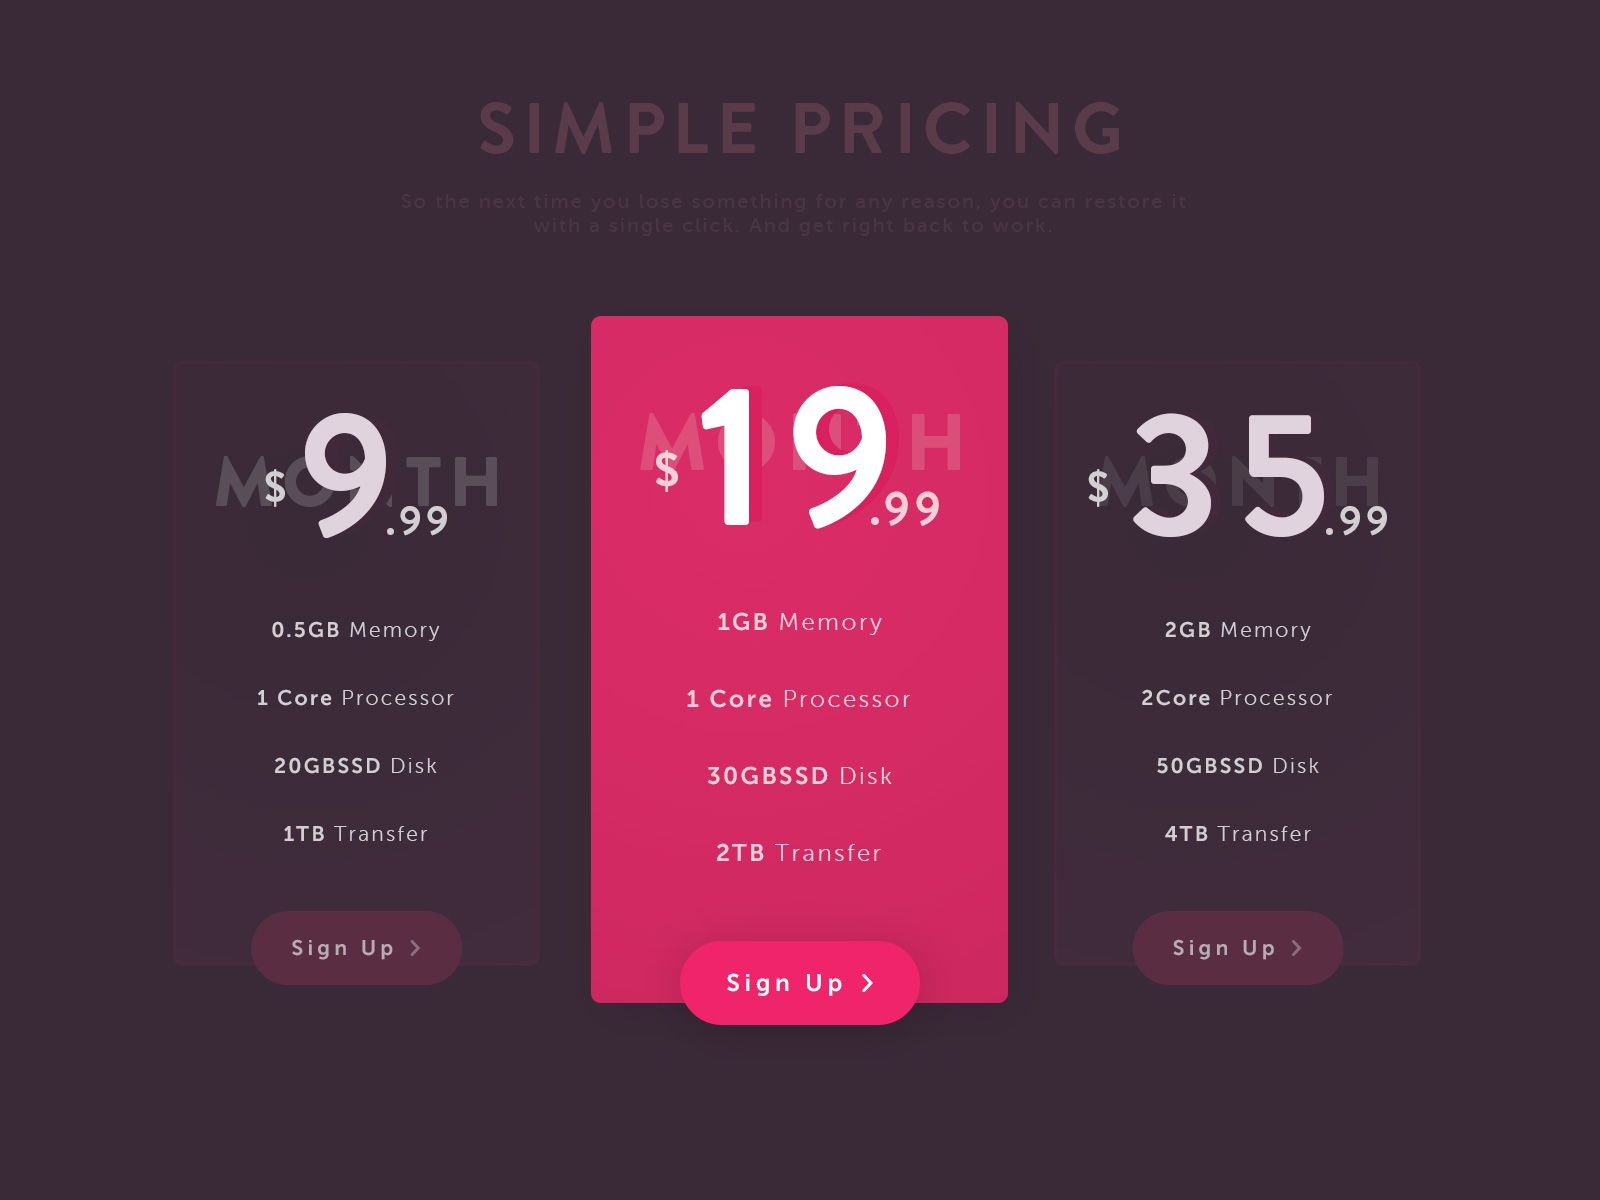 Simple pricing